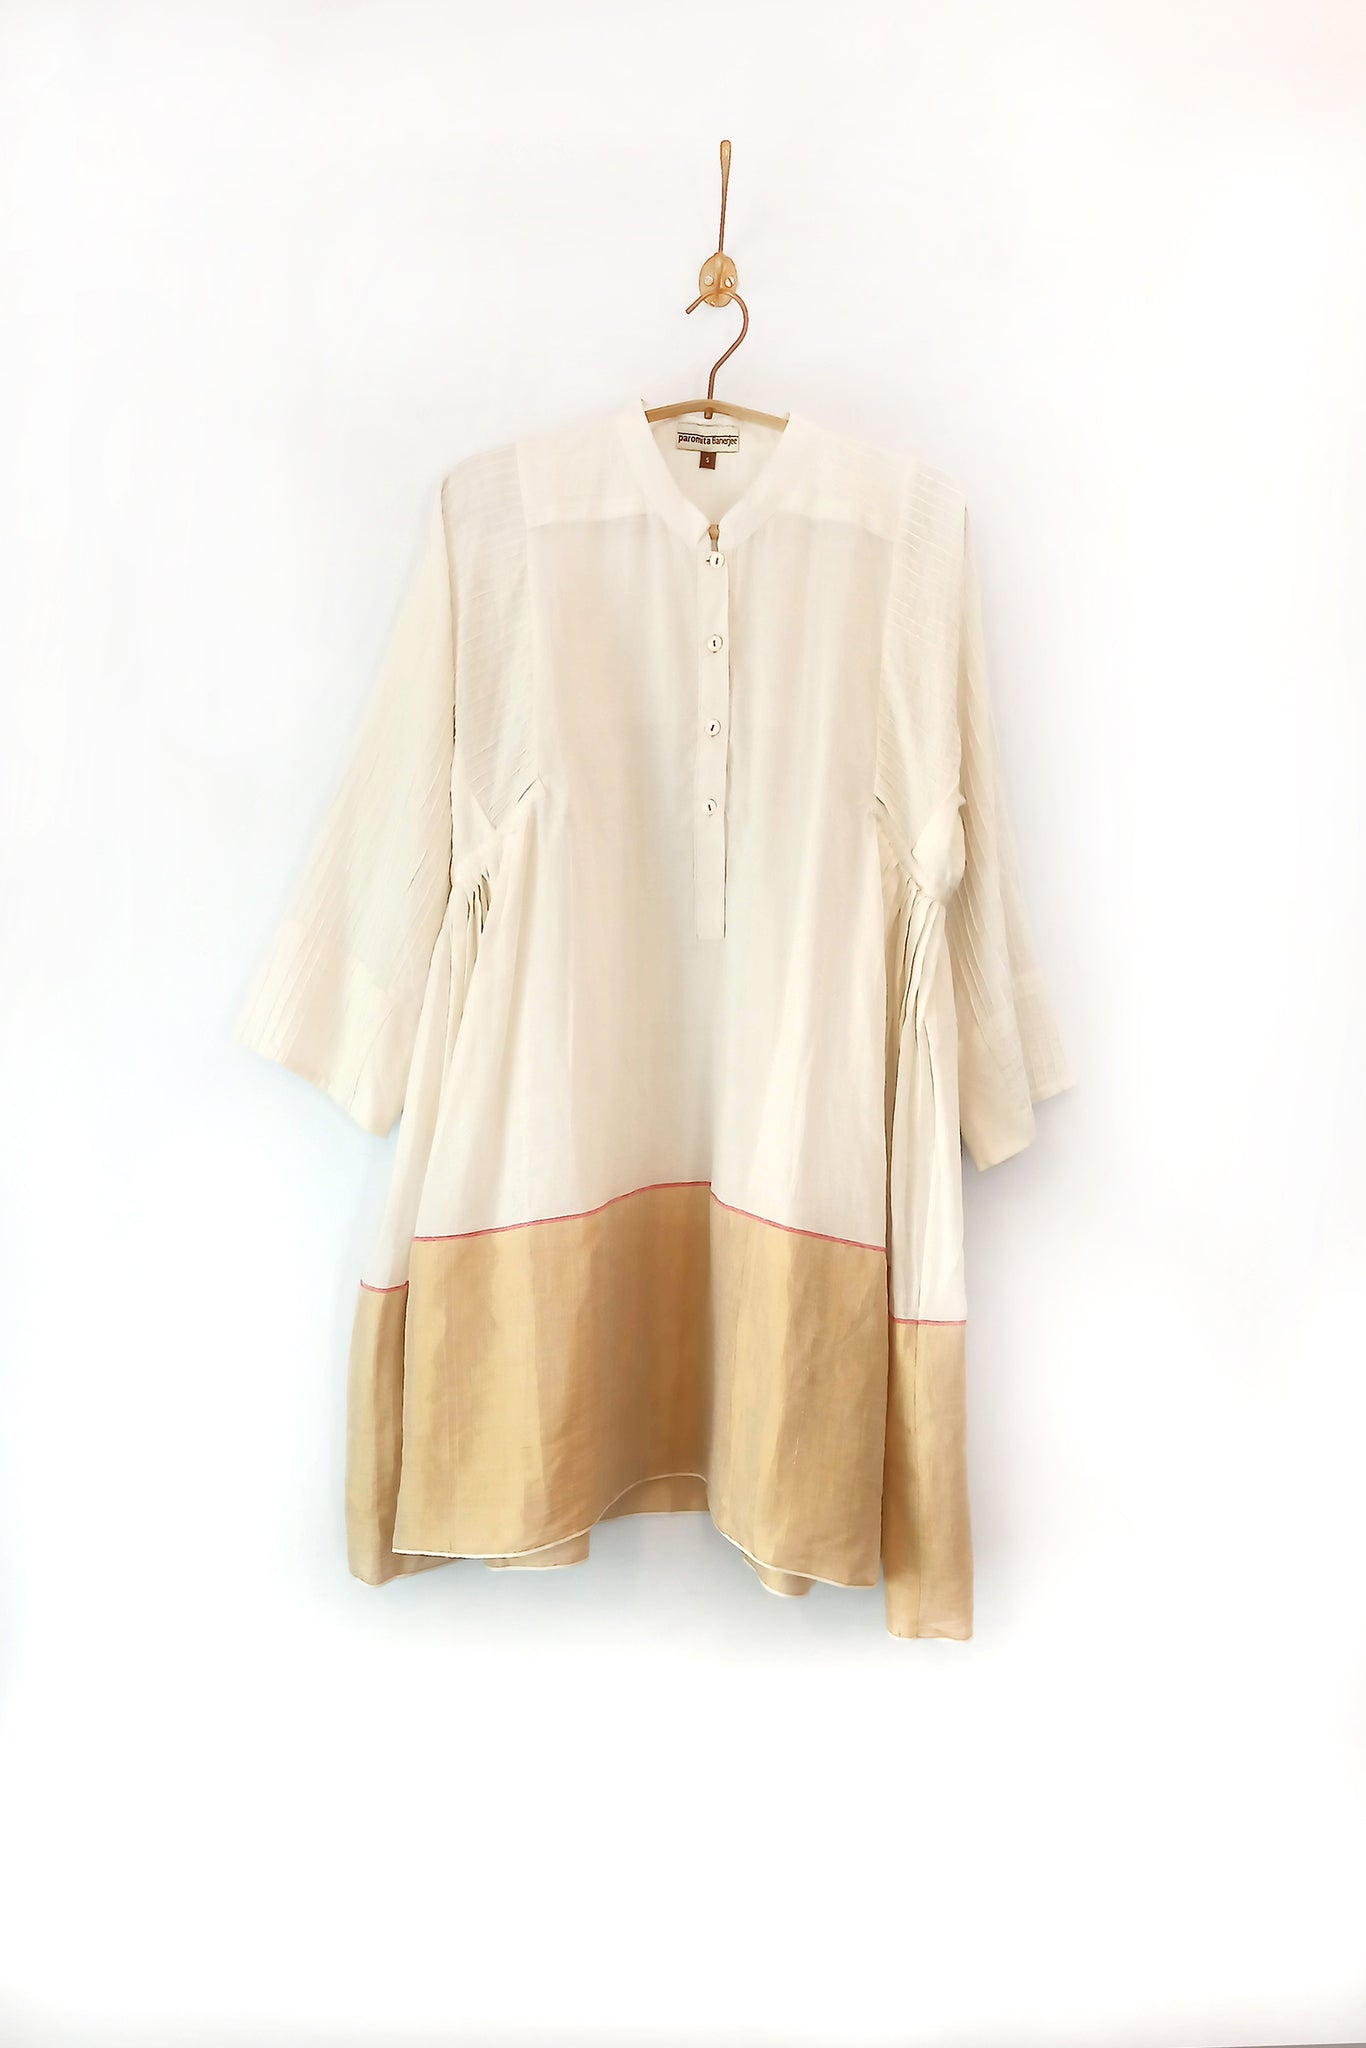 Woven ivory - gold tunic